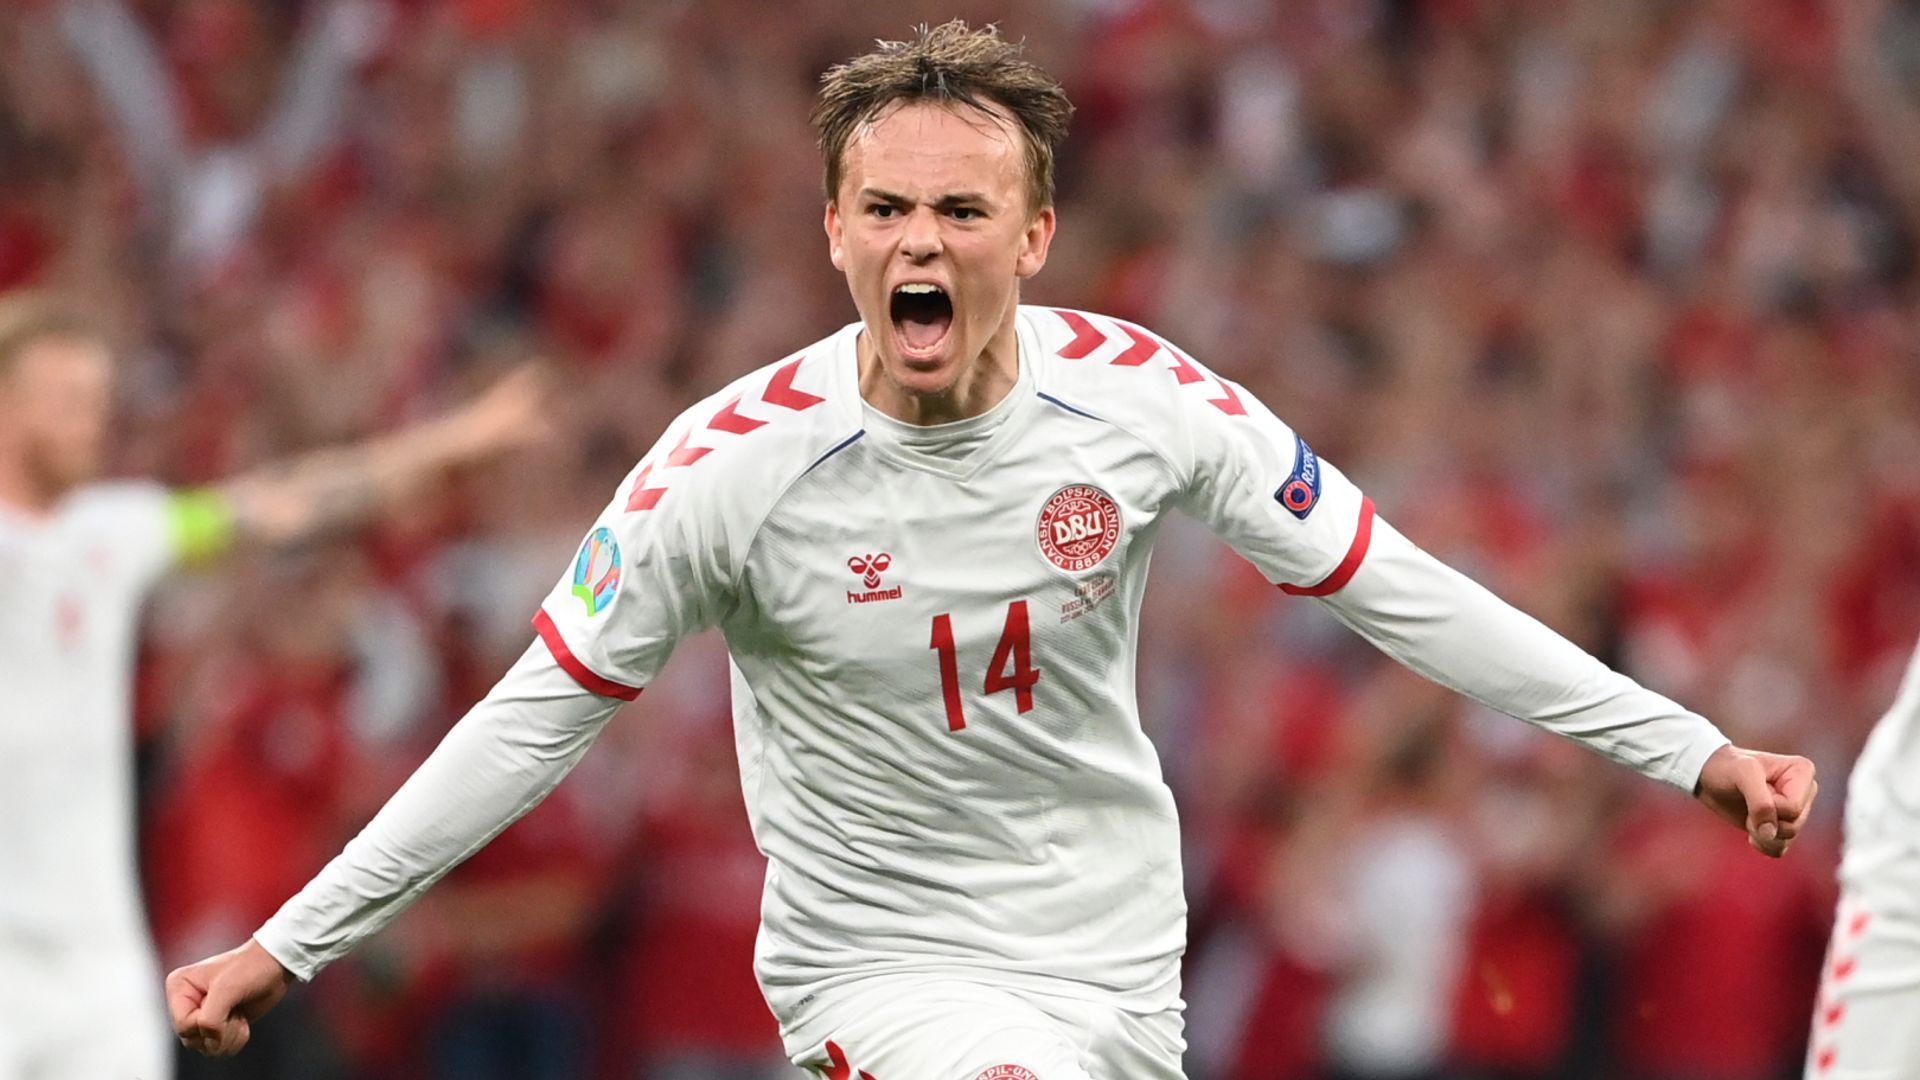 Emotional Denmark thrash Russia to face Wales in last 16